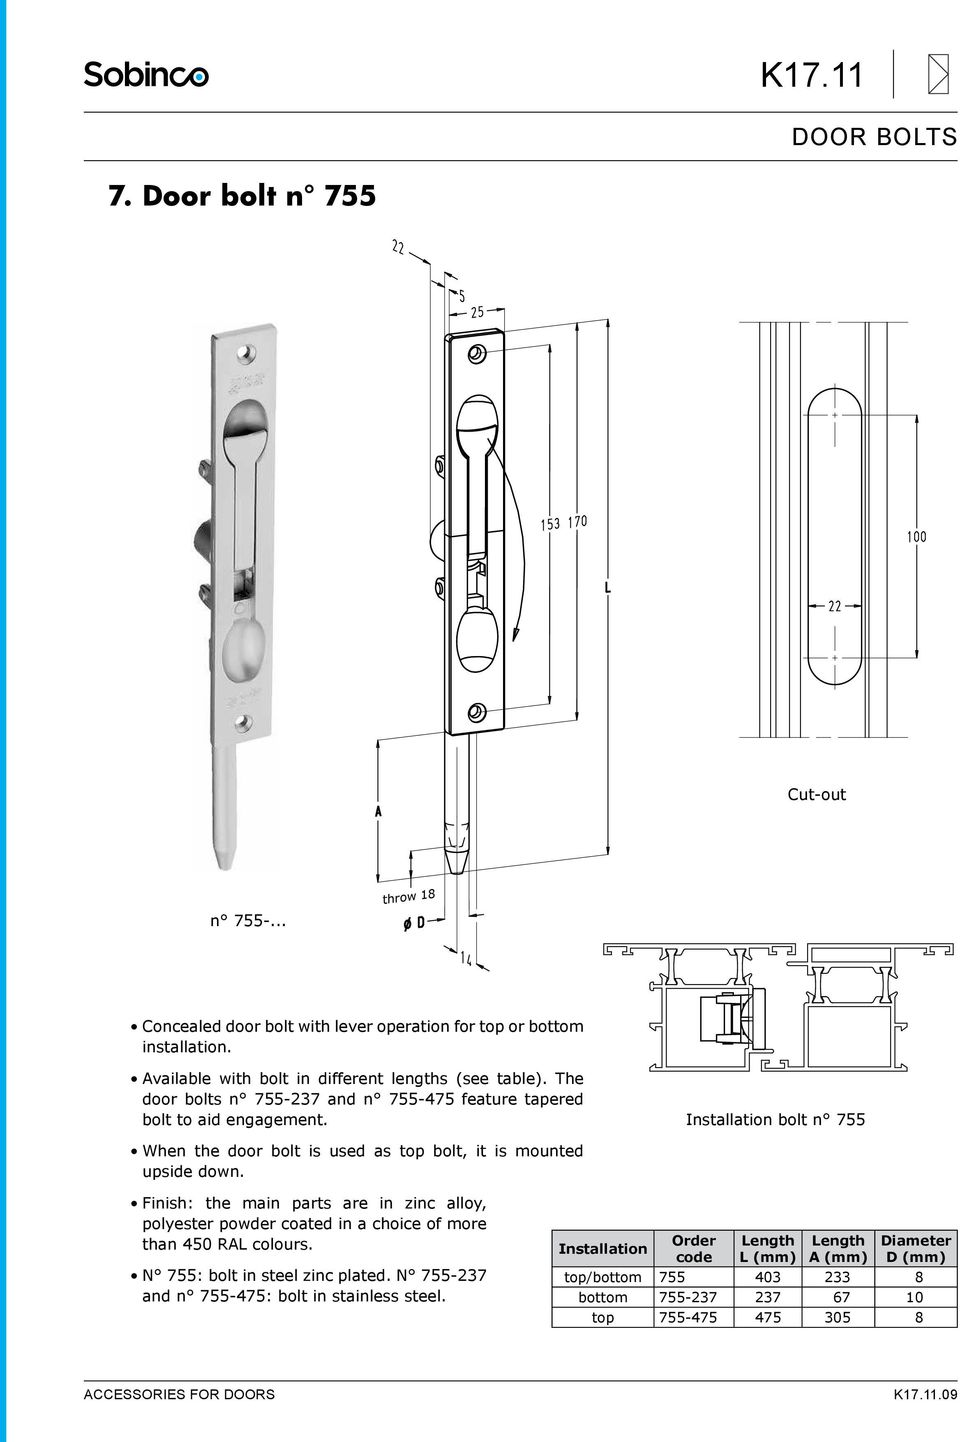 Installation bolt n 755 When the door bolt is used as top bolt, it is mounted upside down.